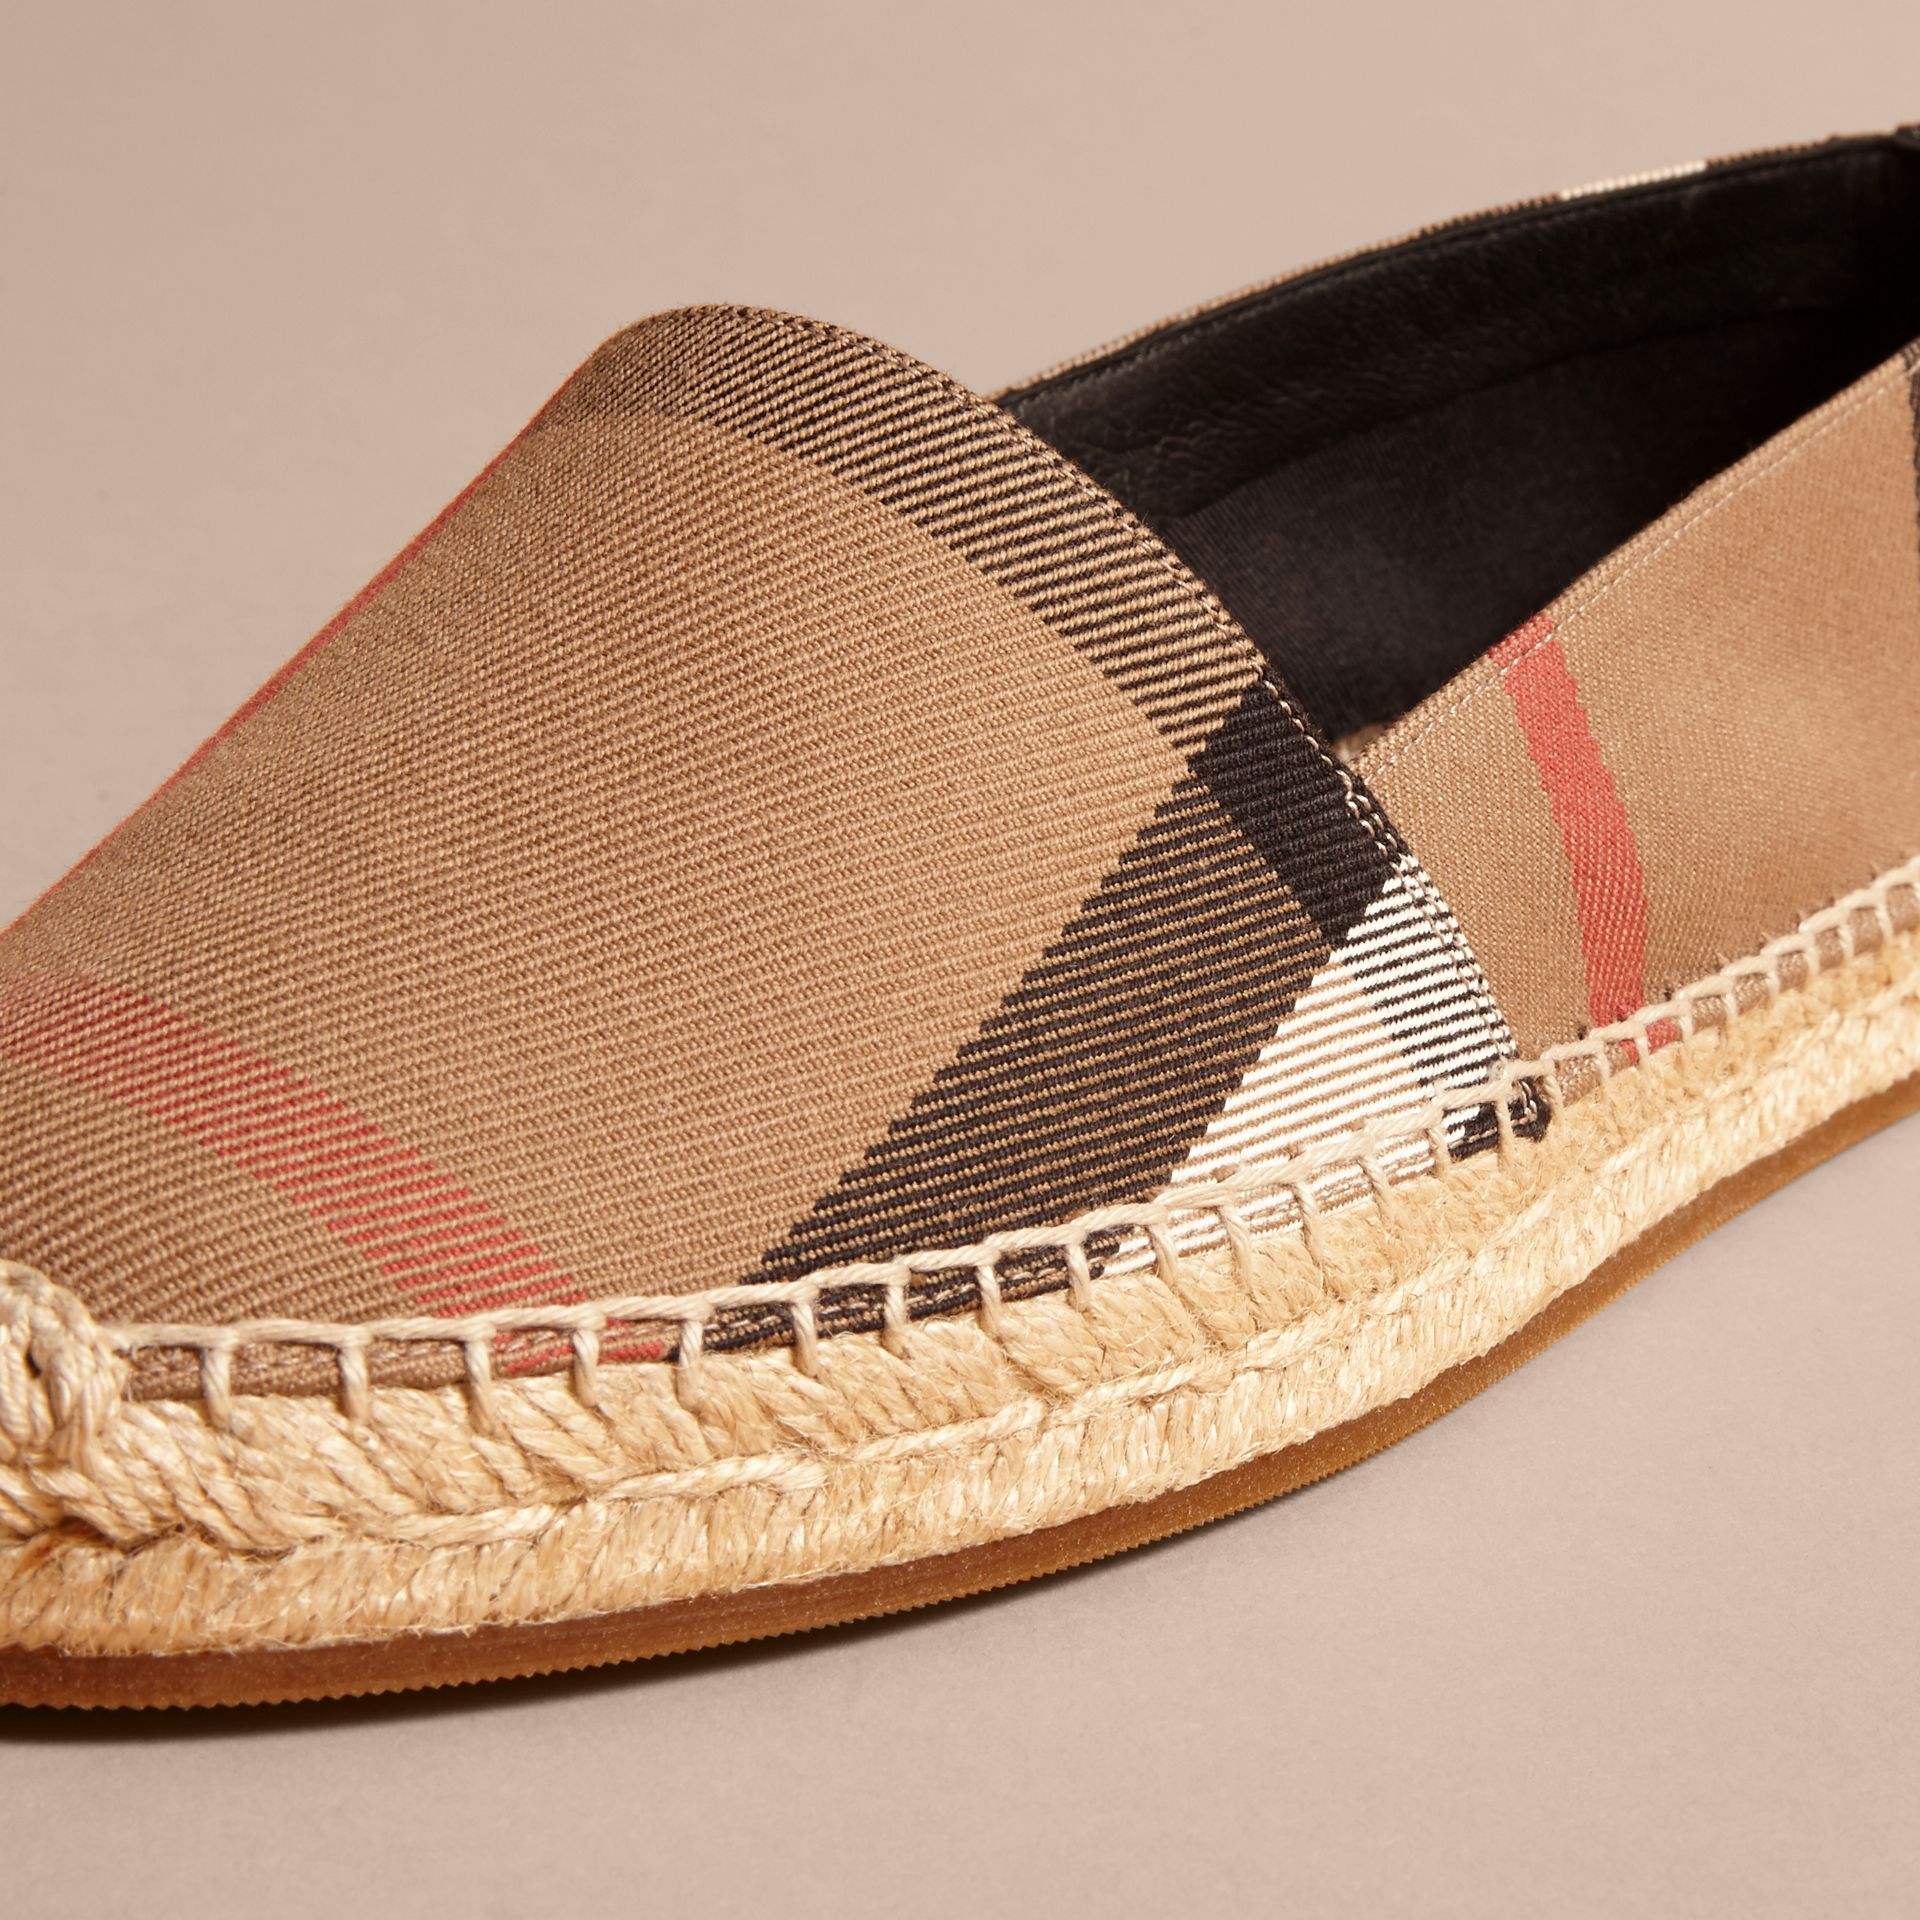 Leather Trim Canvas Check Espadrilles in Classic - Women | Burberry Canada - gallery image 2